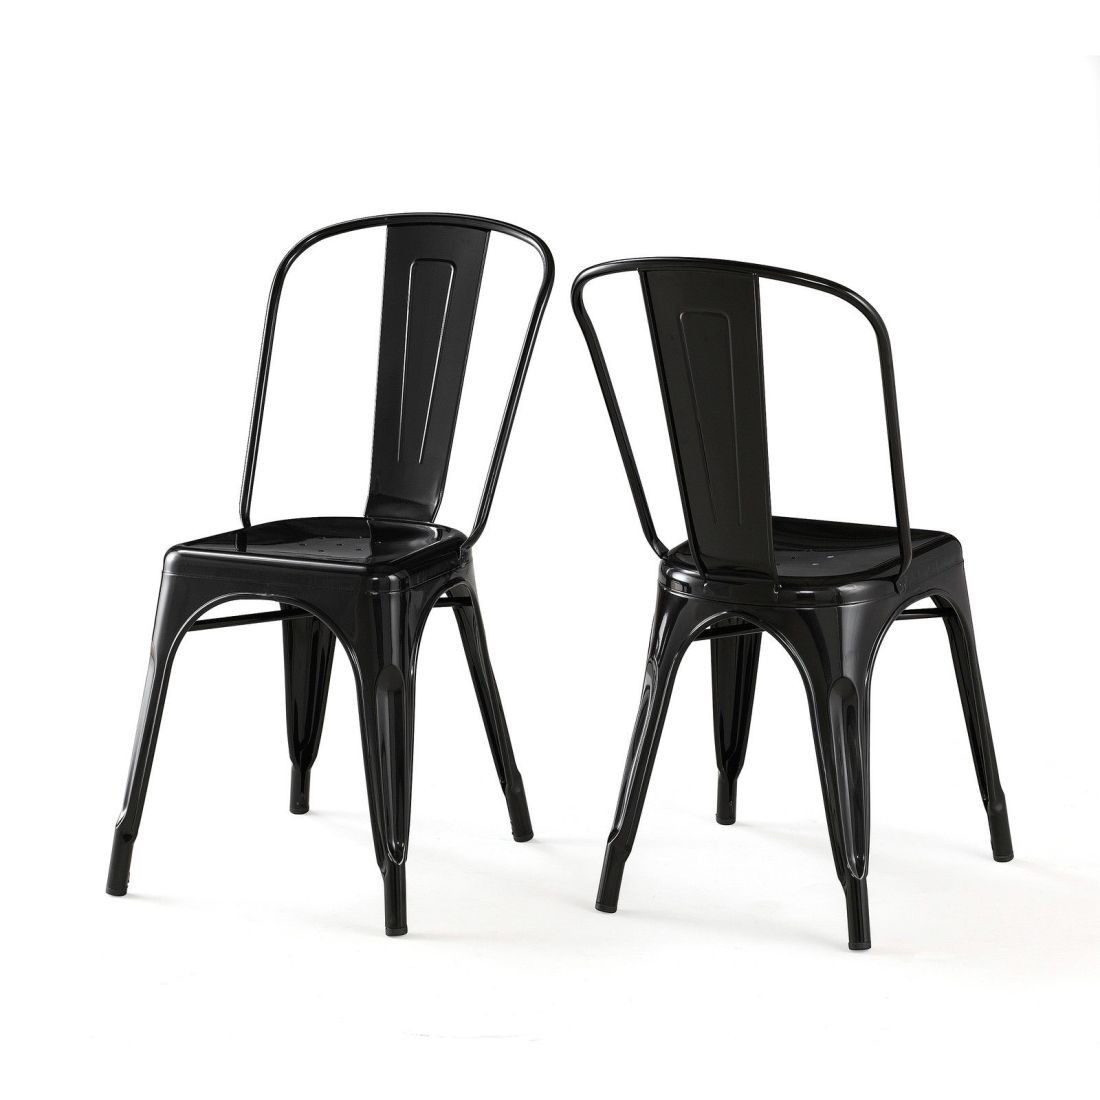 Black Metal Patio Chairs Black Metal Patio Chairs Image Pixelmari